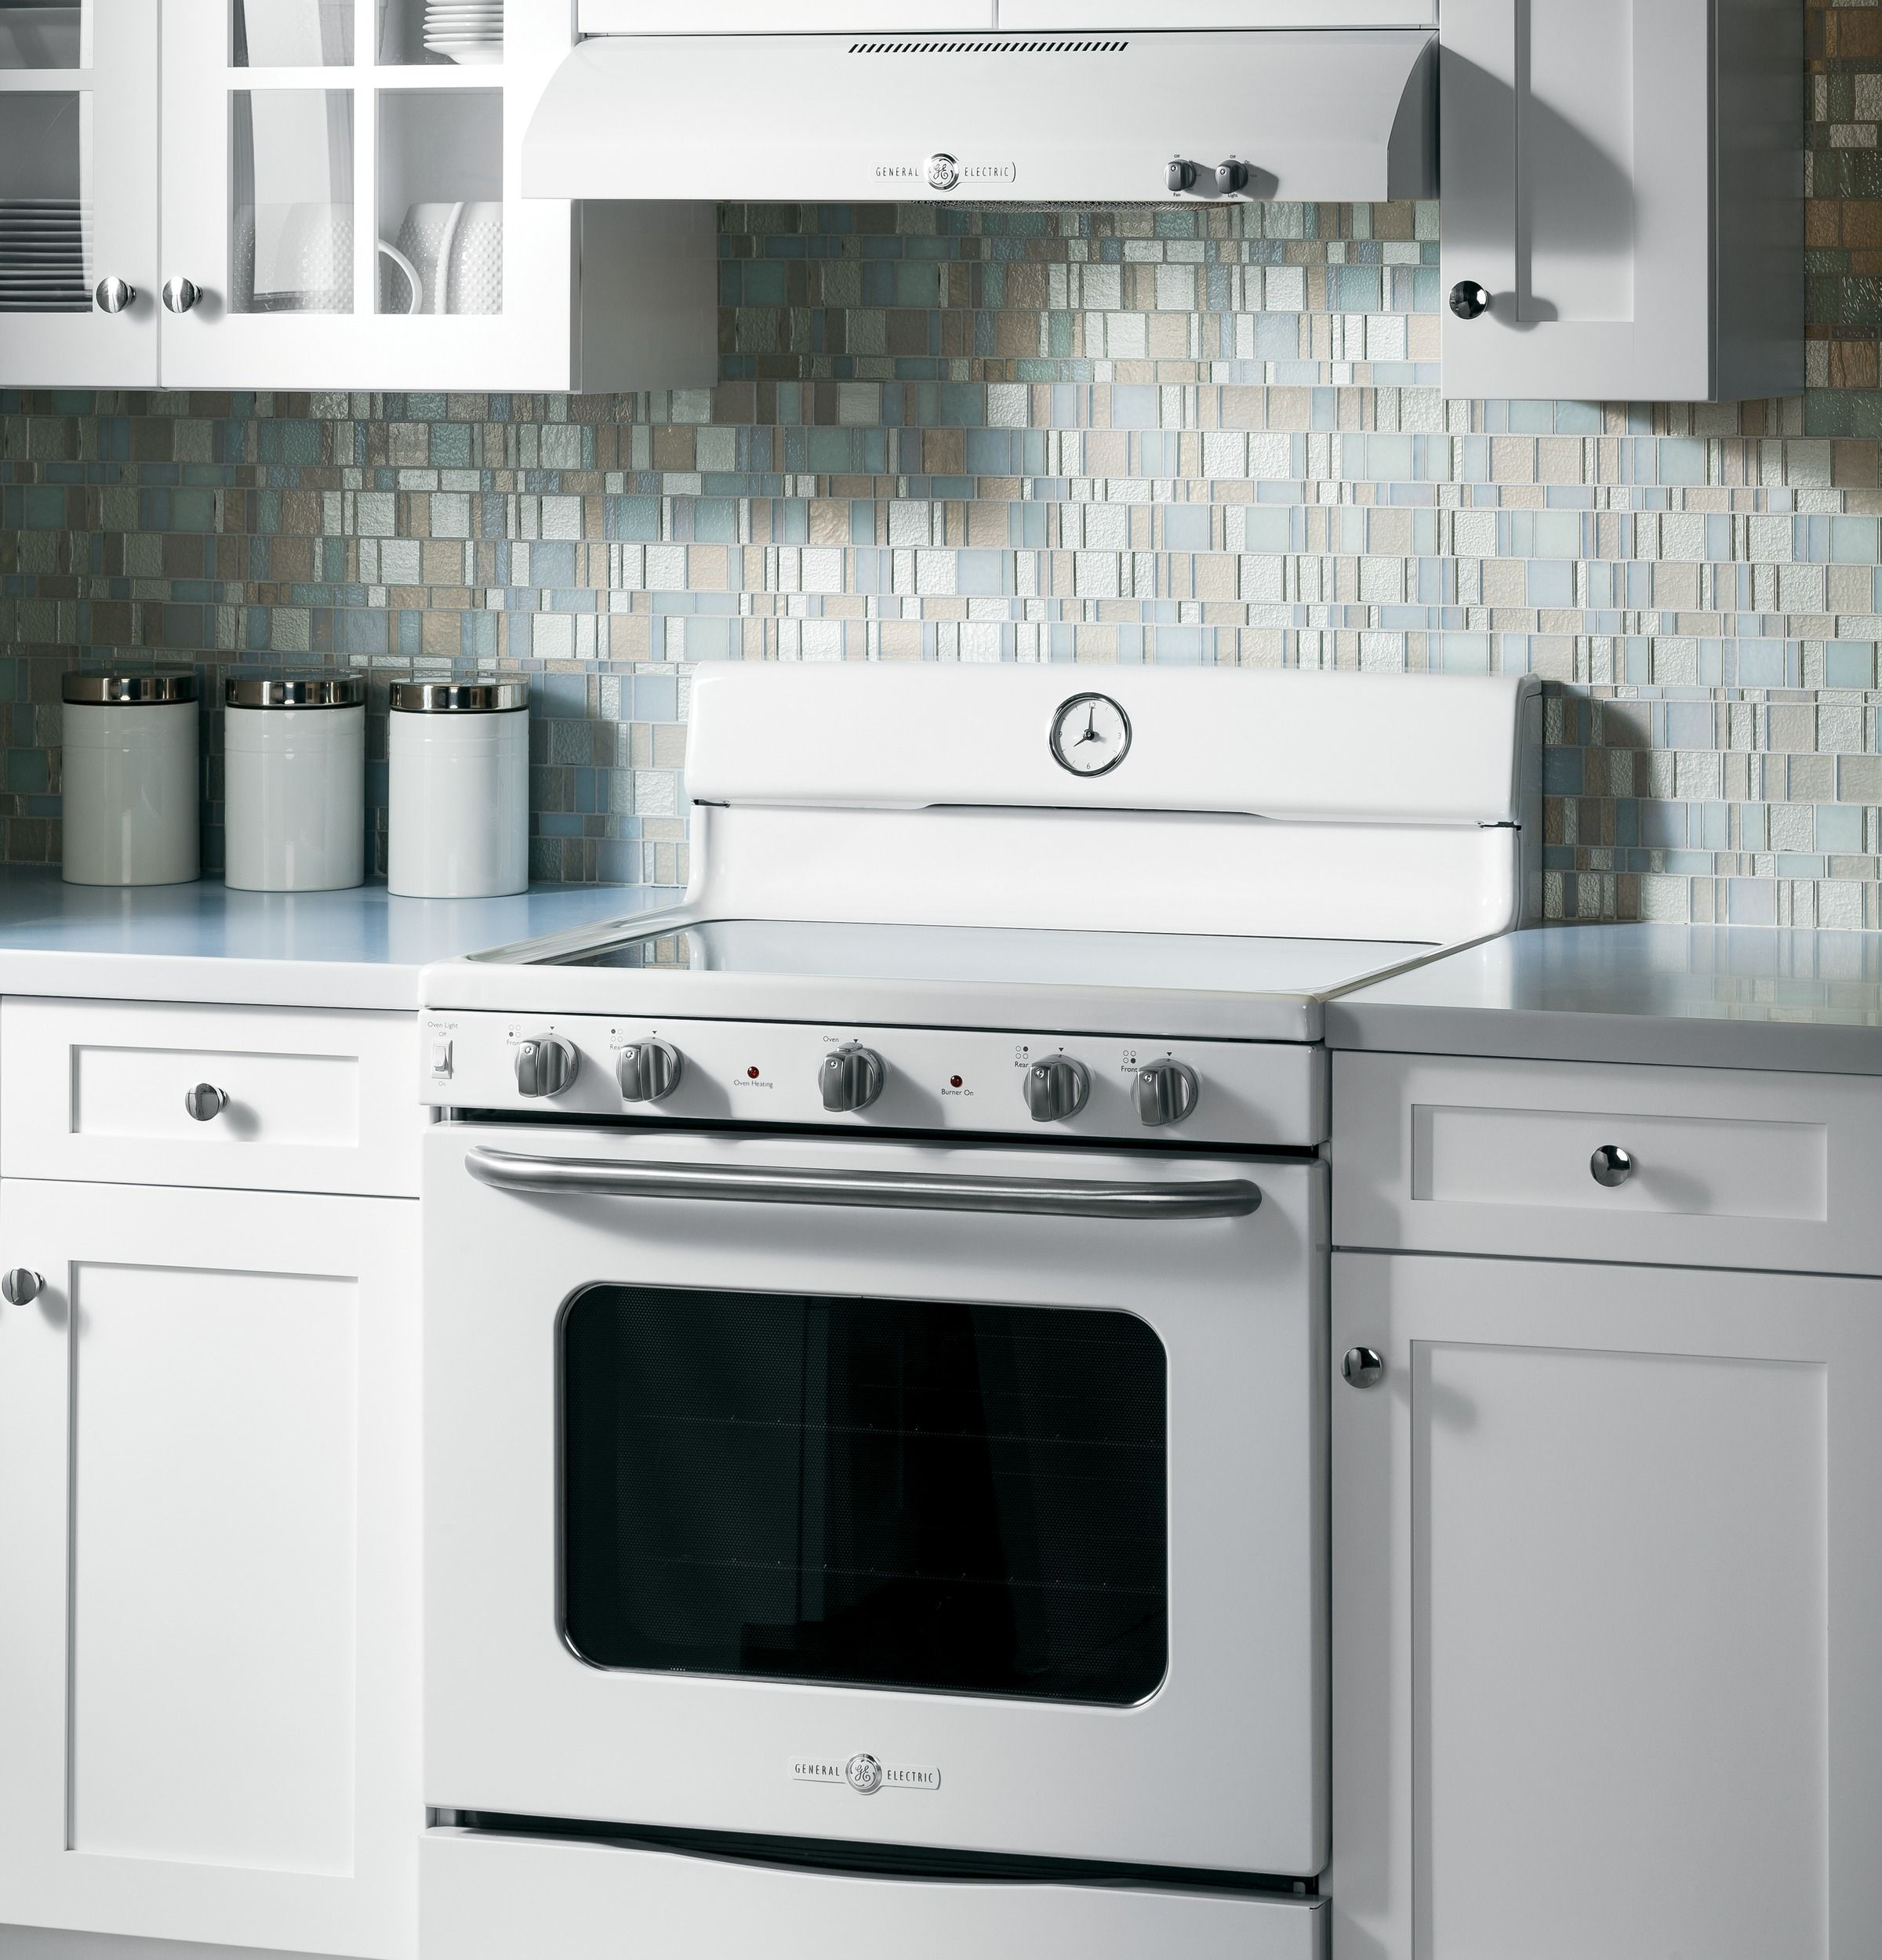 """Small Electric Kitchen Appliances: GE Artistry™ Series 30"""" Free-Standing Electric"""